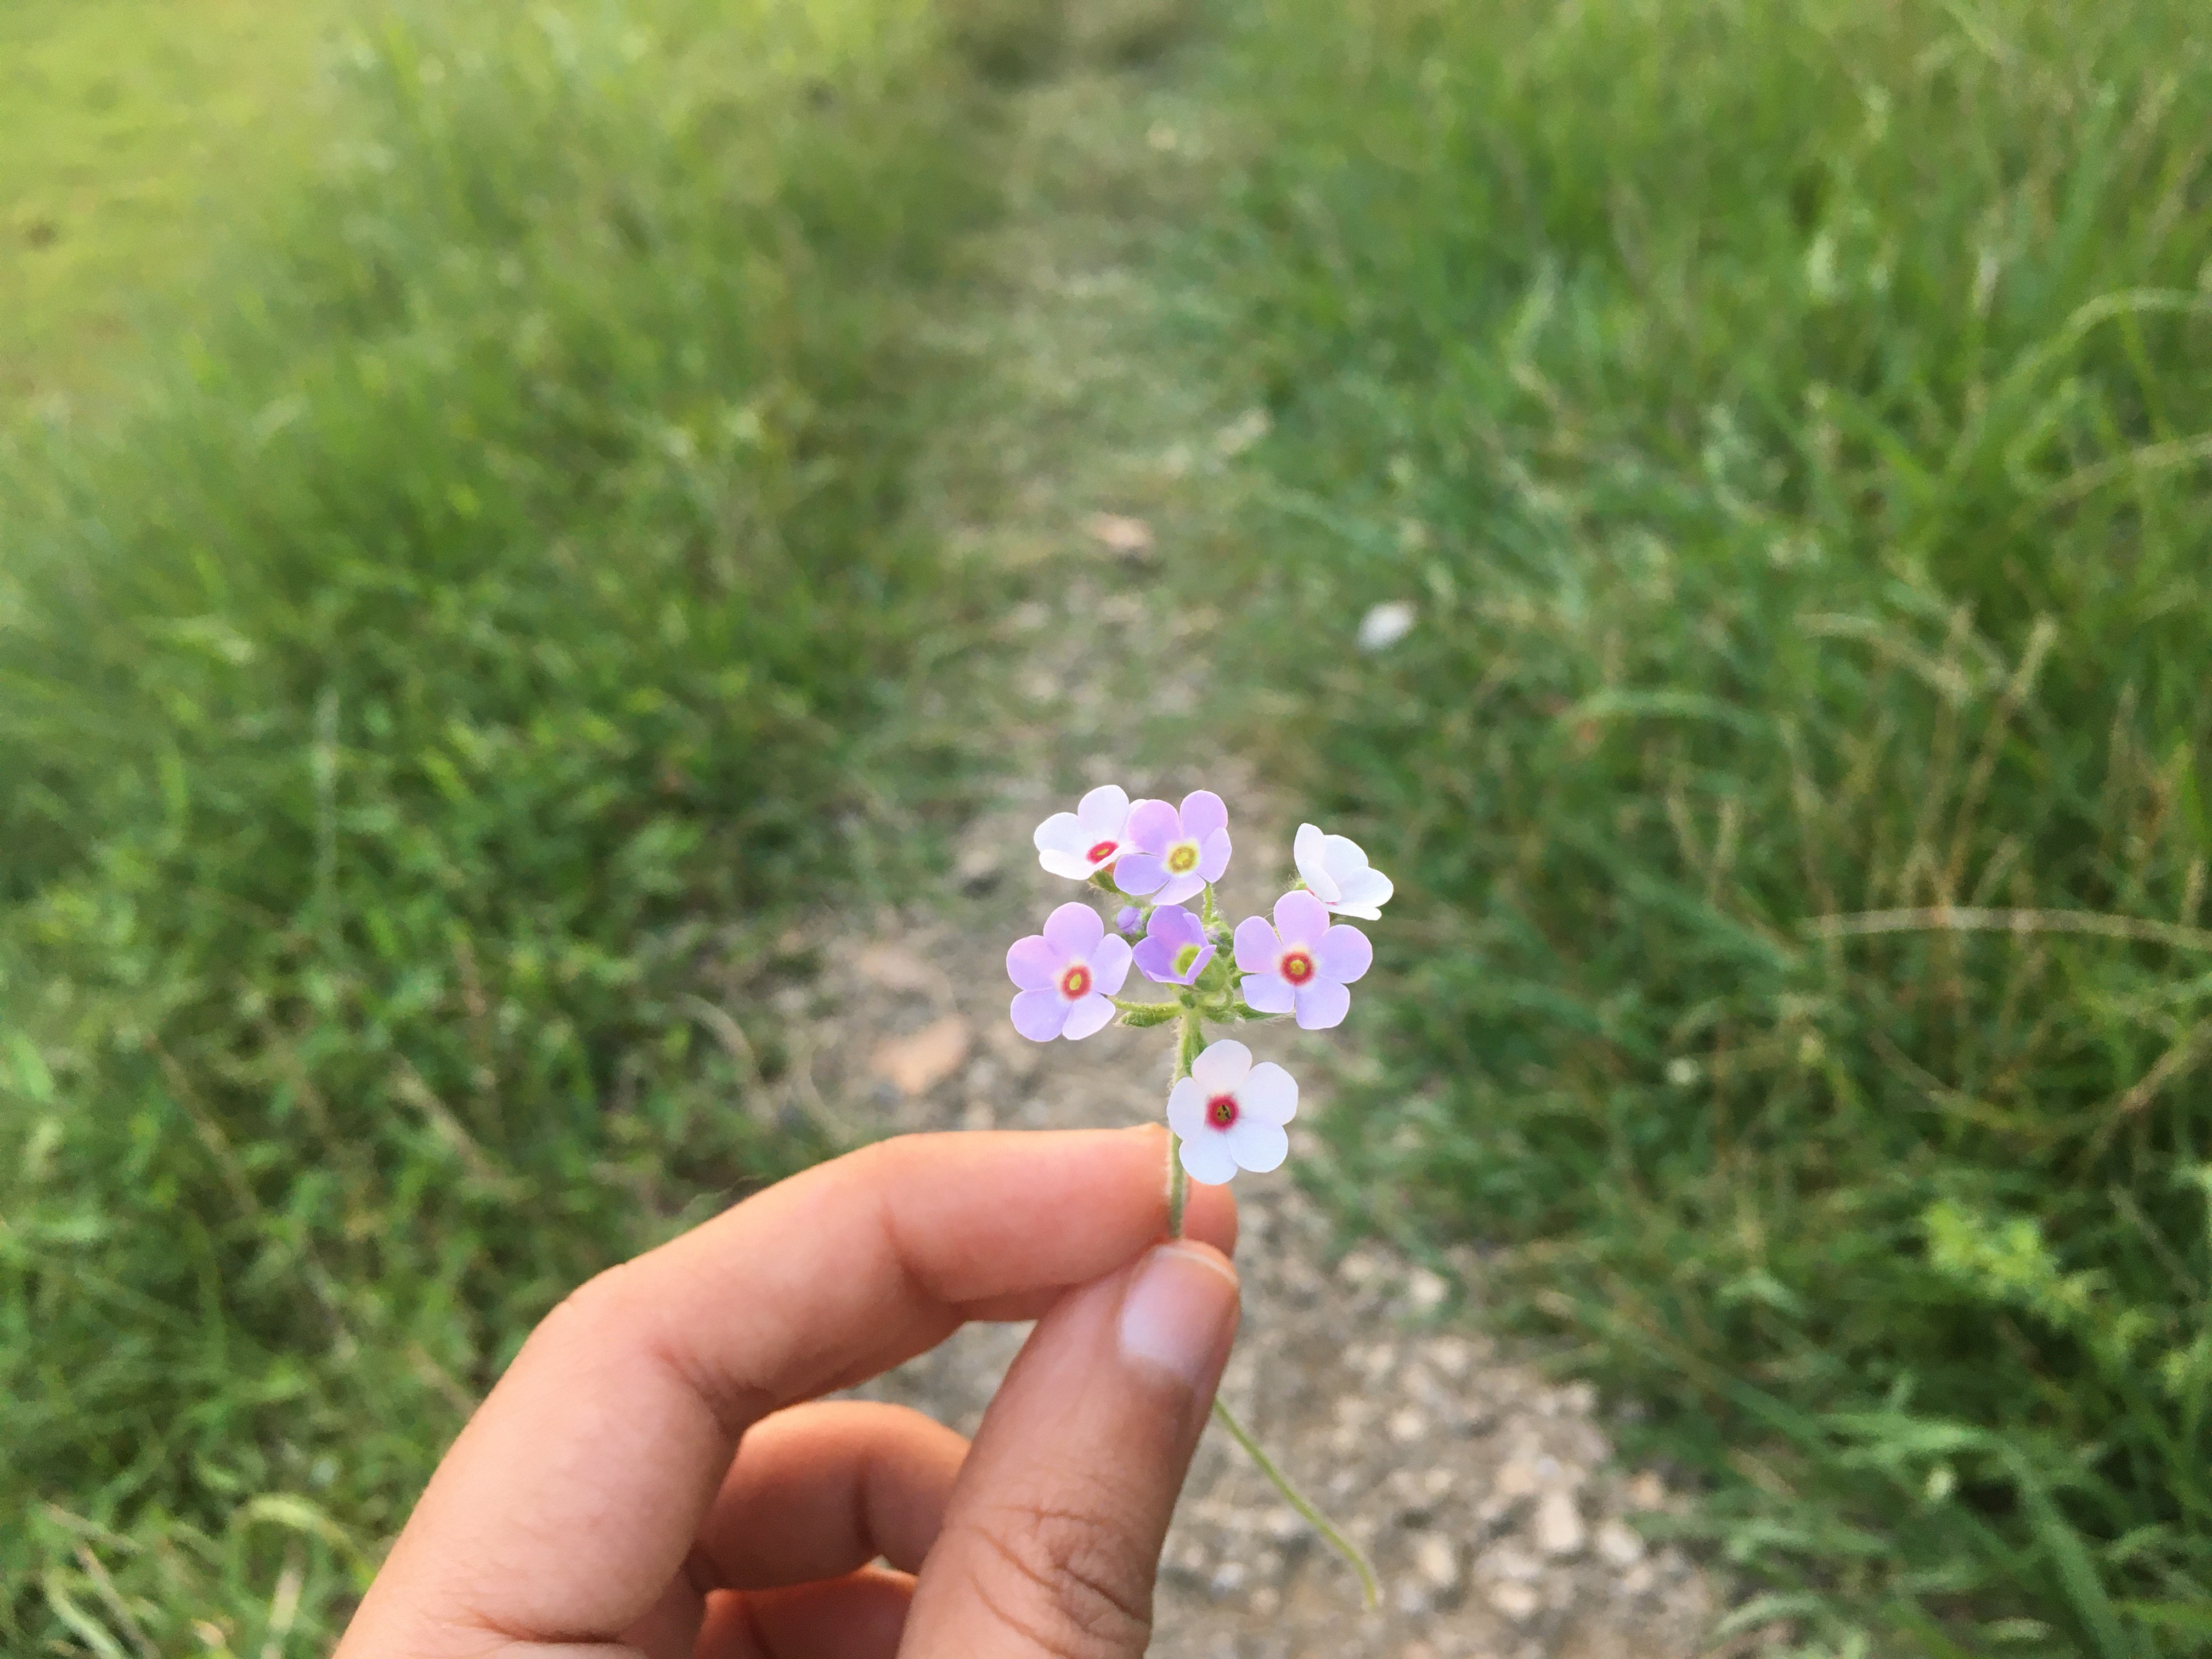 A hand holding a flower on a path - both sides of which is fully green